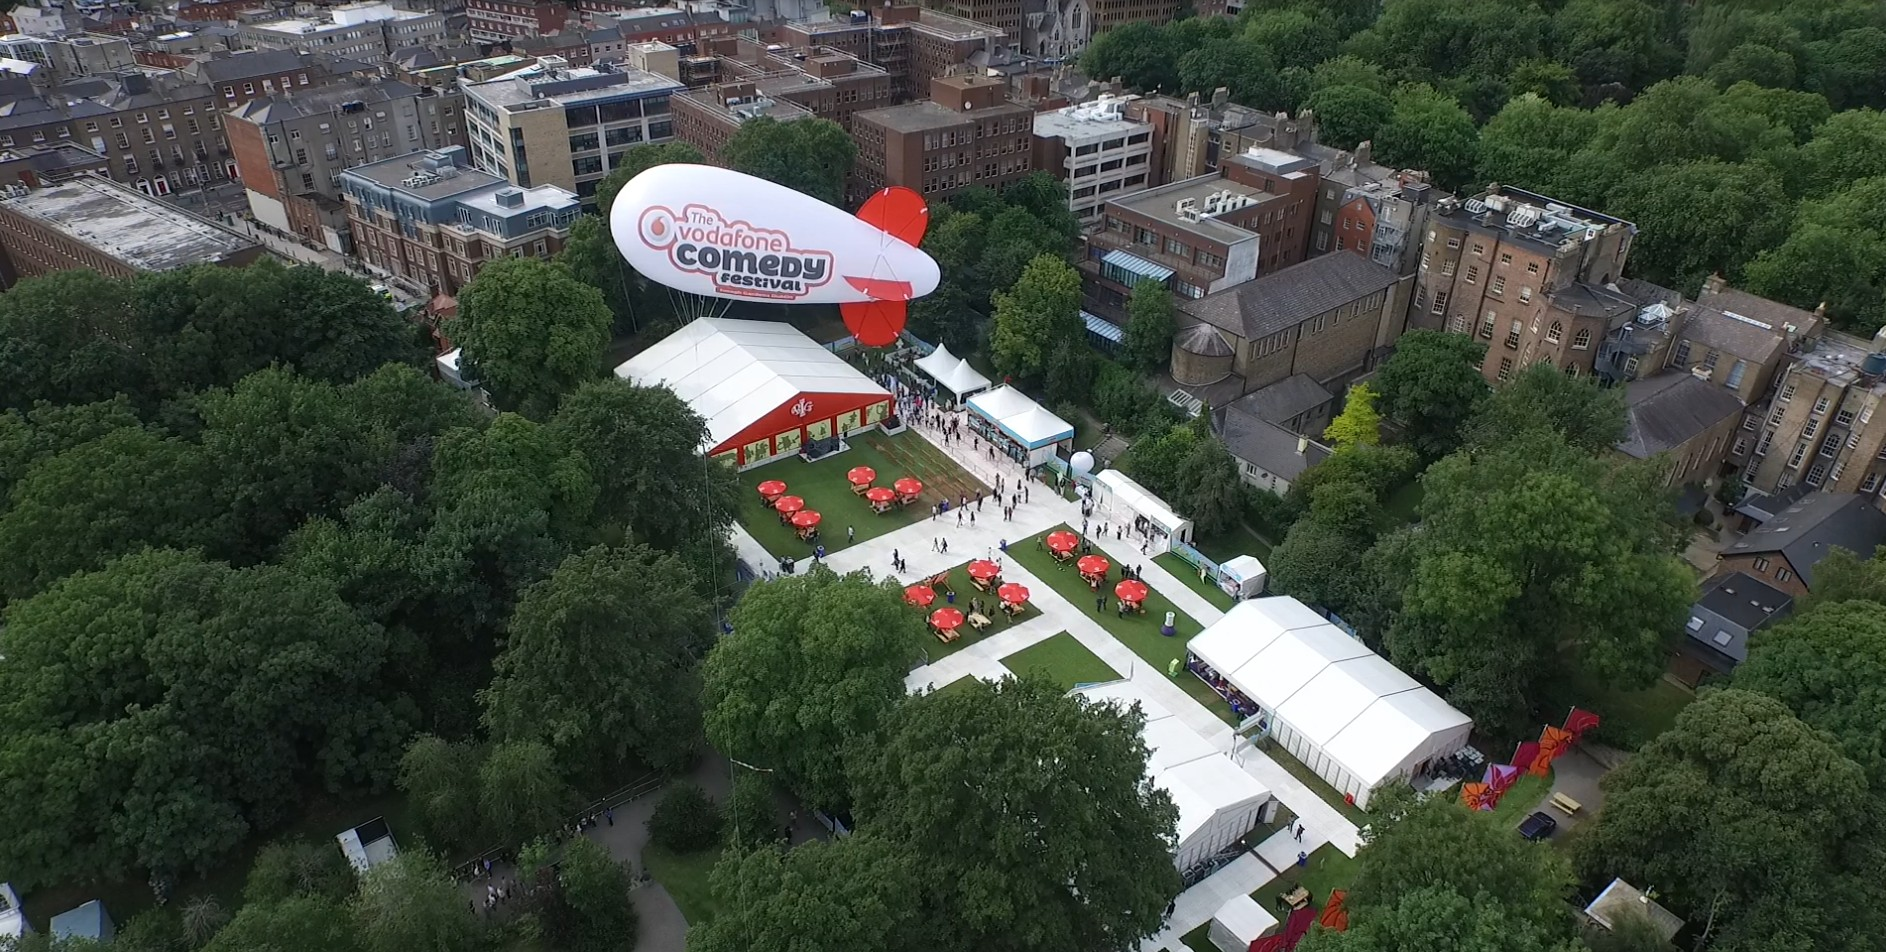 blimp aerial 1 In Your Face Media Limited